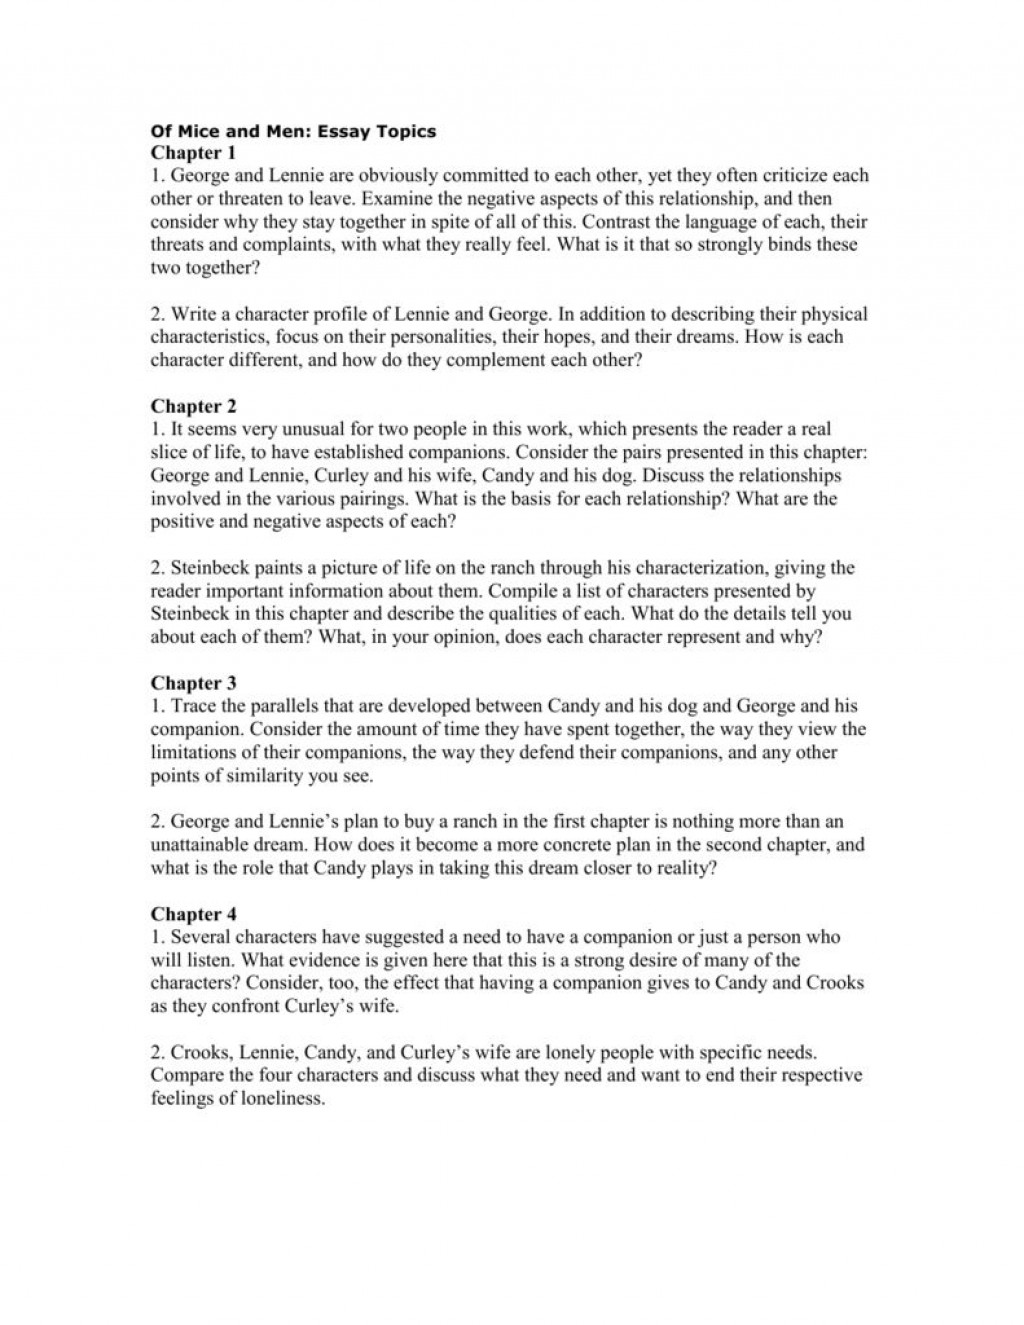 004 Fearsome Of Mice And Men Essay Concept  Prompt TopicLarge